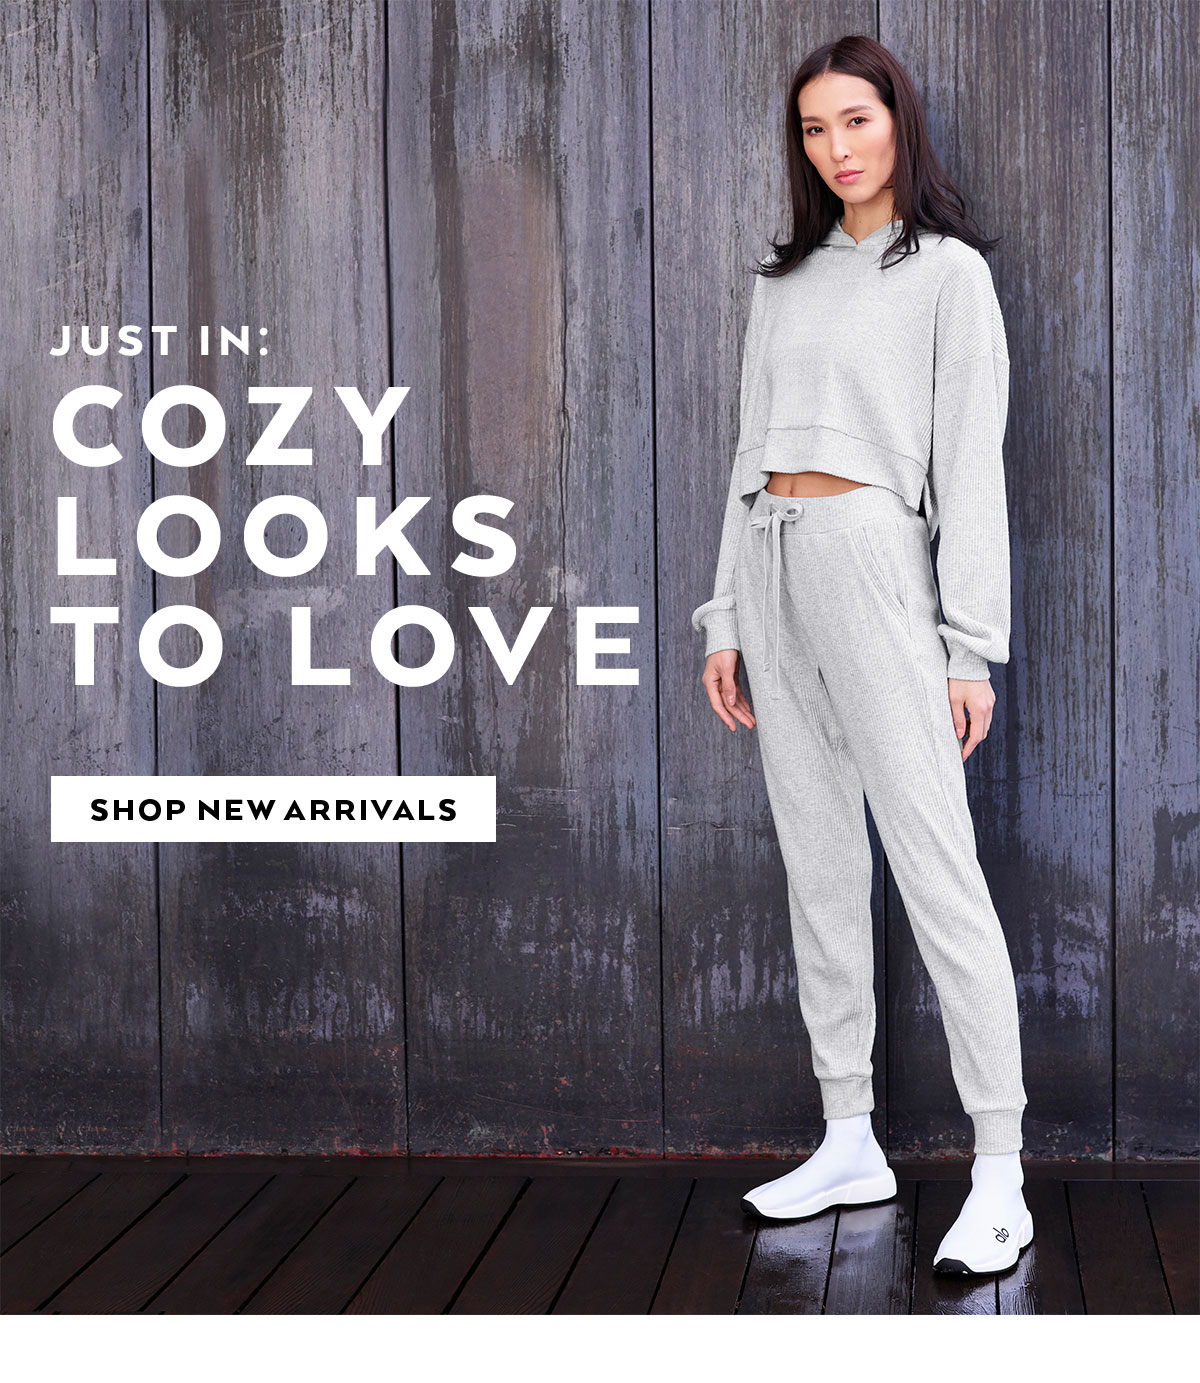 JUST IN. COZY LOOKS TO LOVE. SHOP NEW ARRIVALS